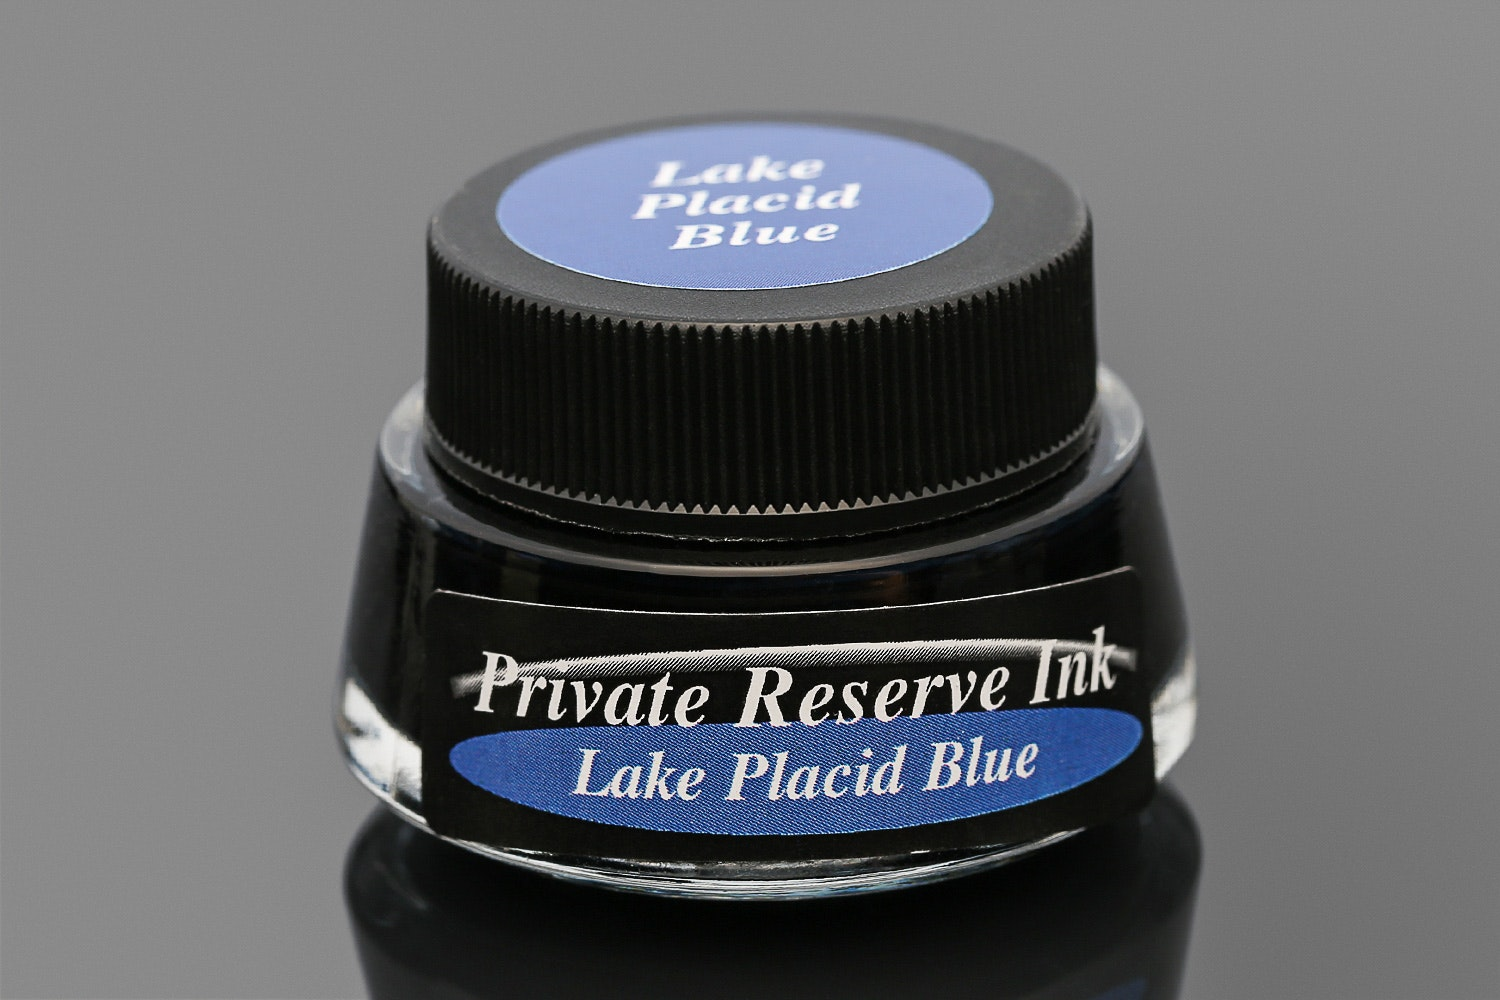 Lake Placid Blue